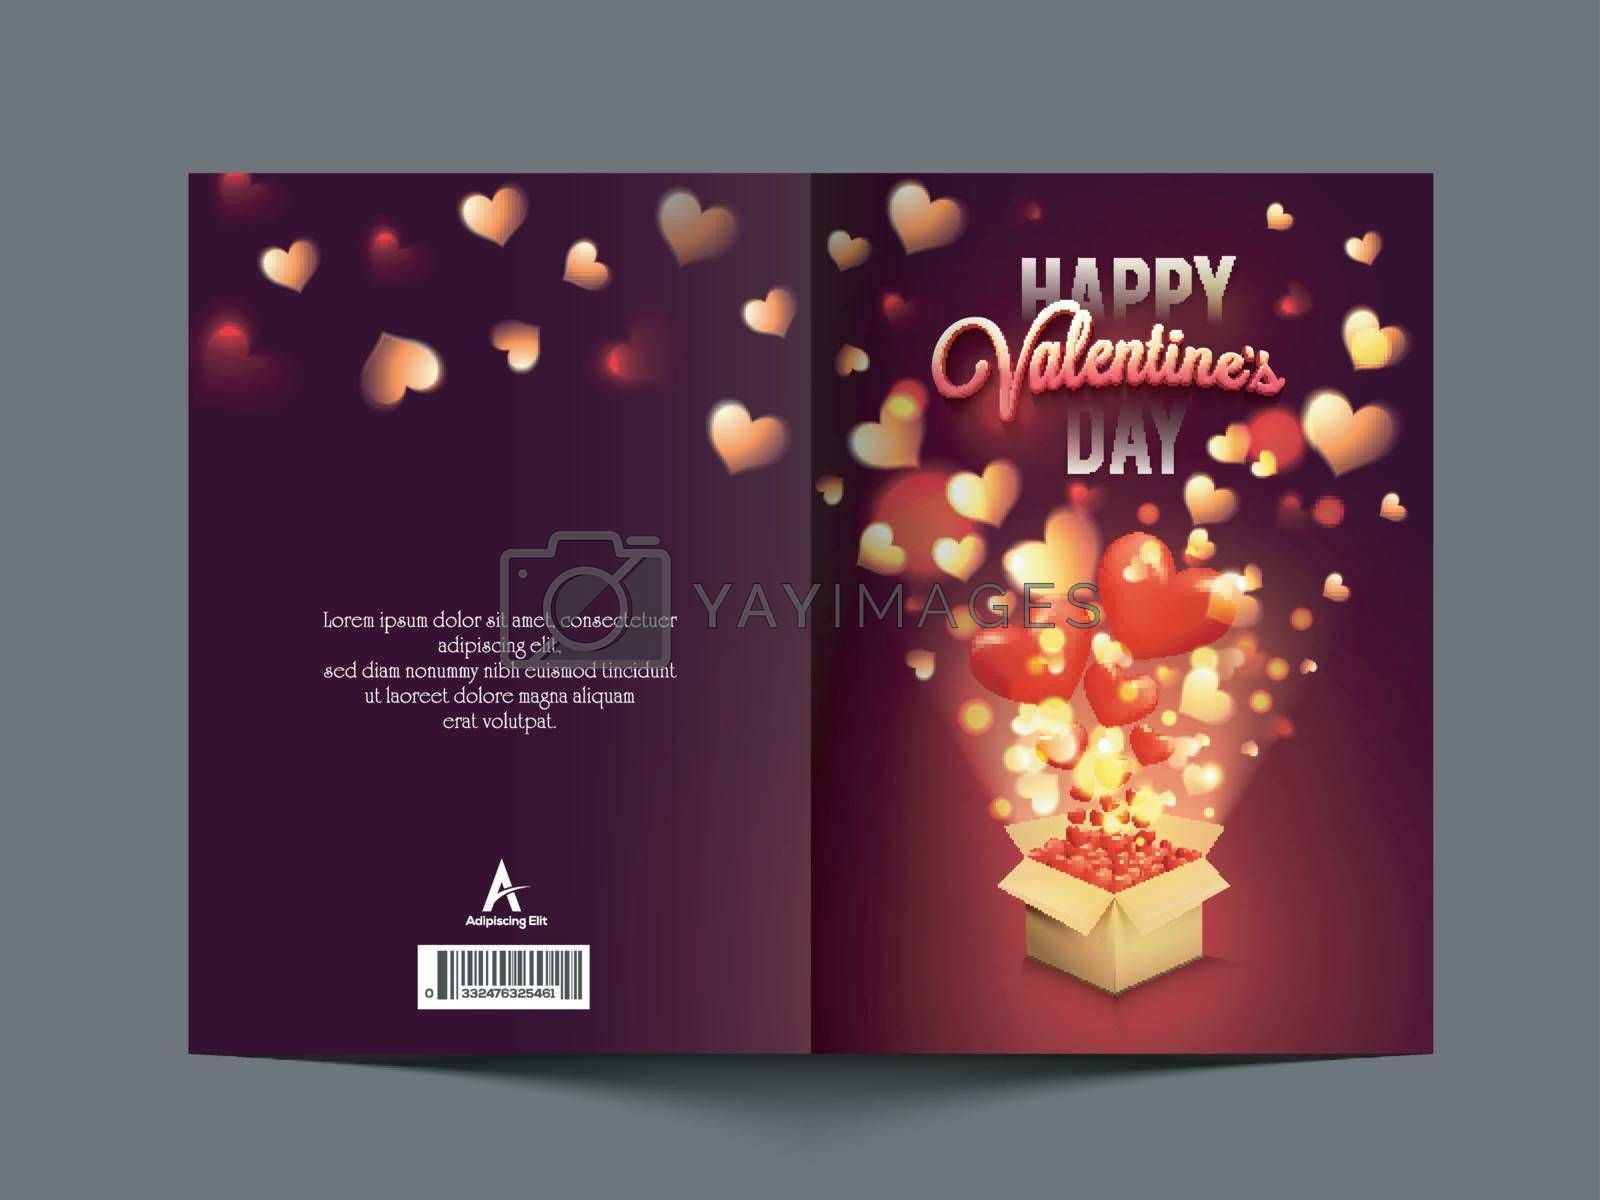 Beautiful glowing greeting card with elegant Hearts coming out from gift box for Happy Valentine's Day Celebration.